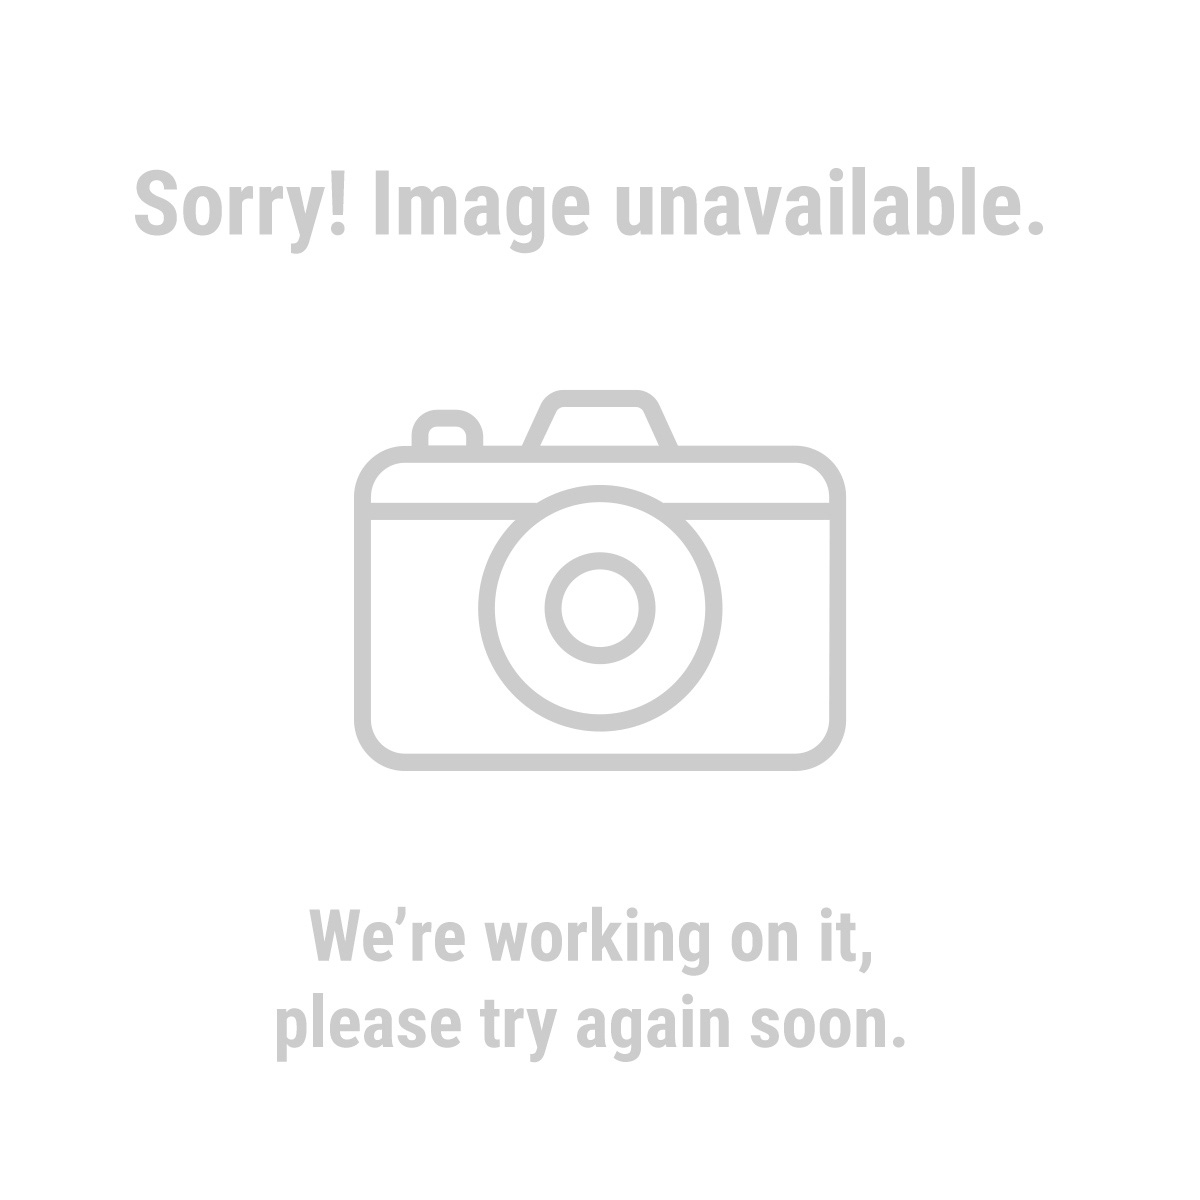 Central Pneumatic 95310 1/2 in. Air Impact Wrench